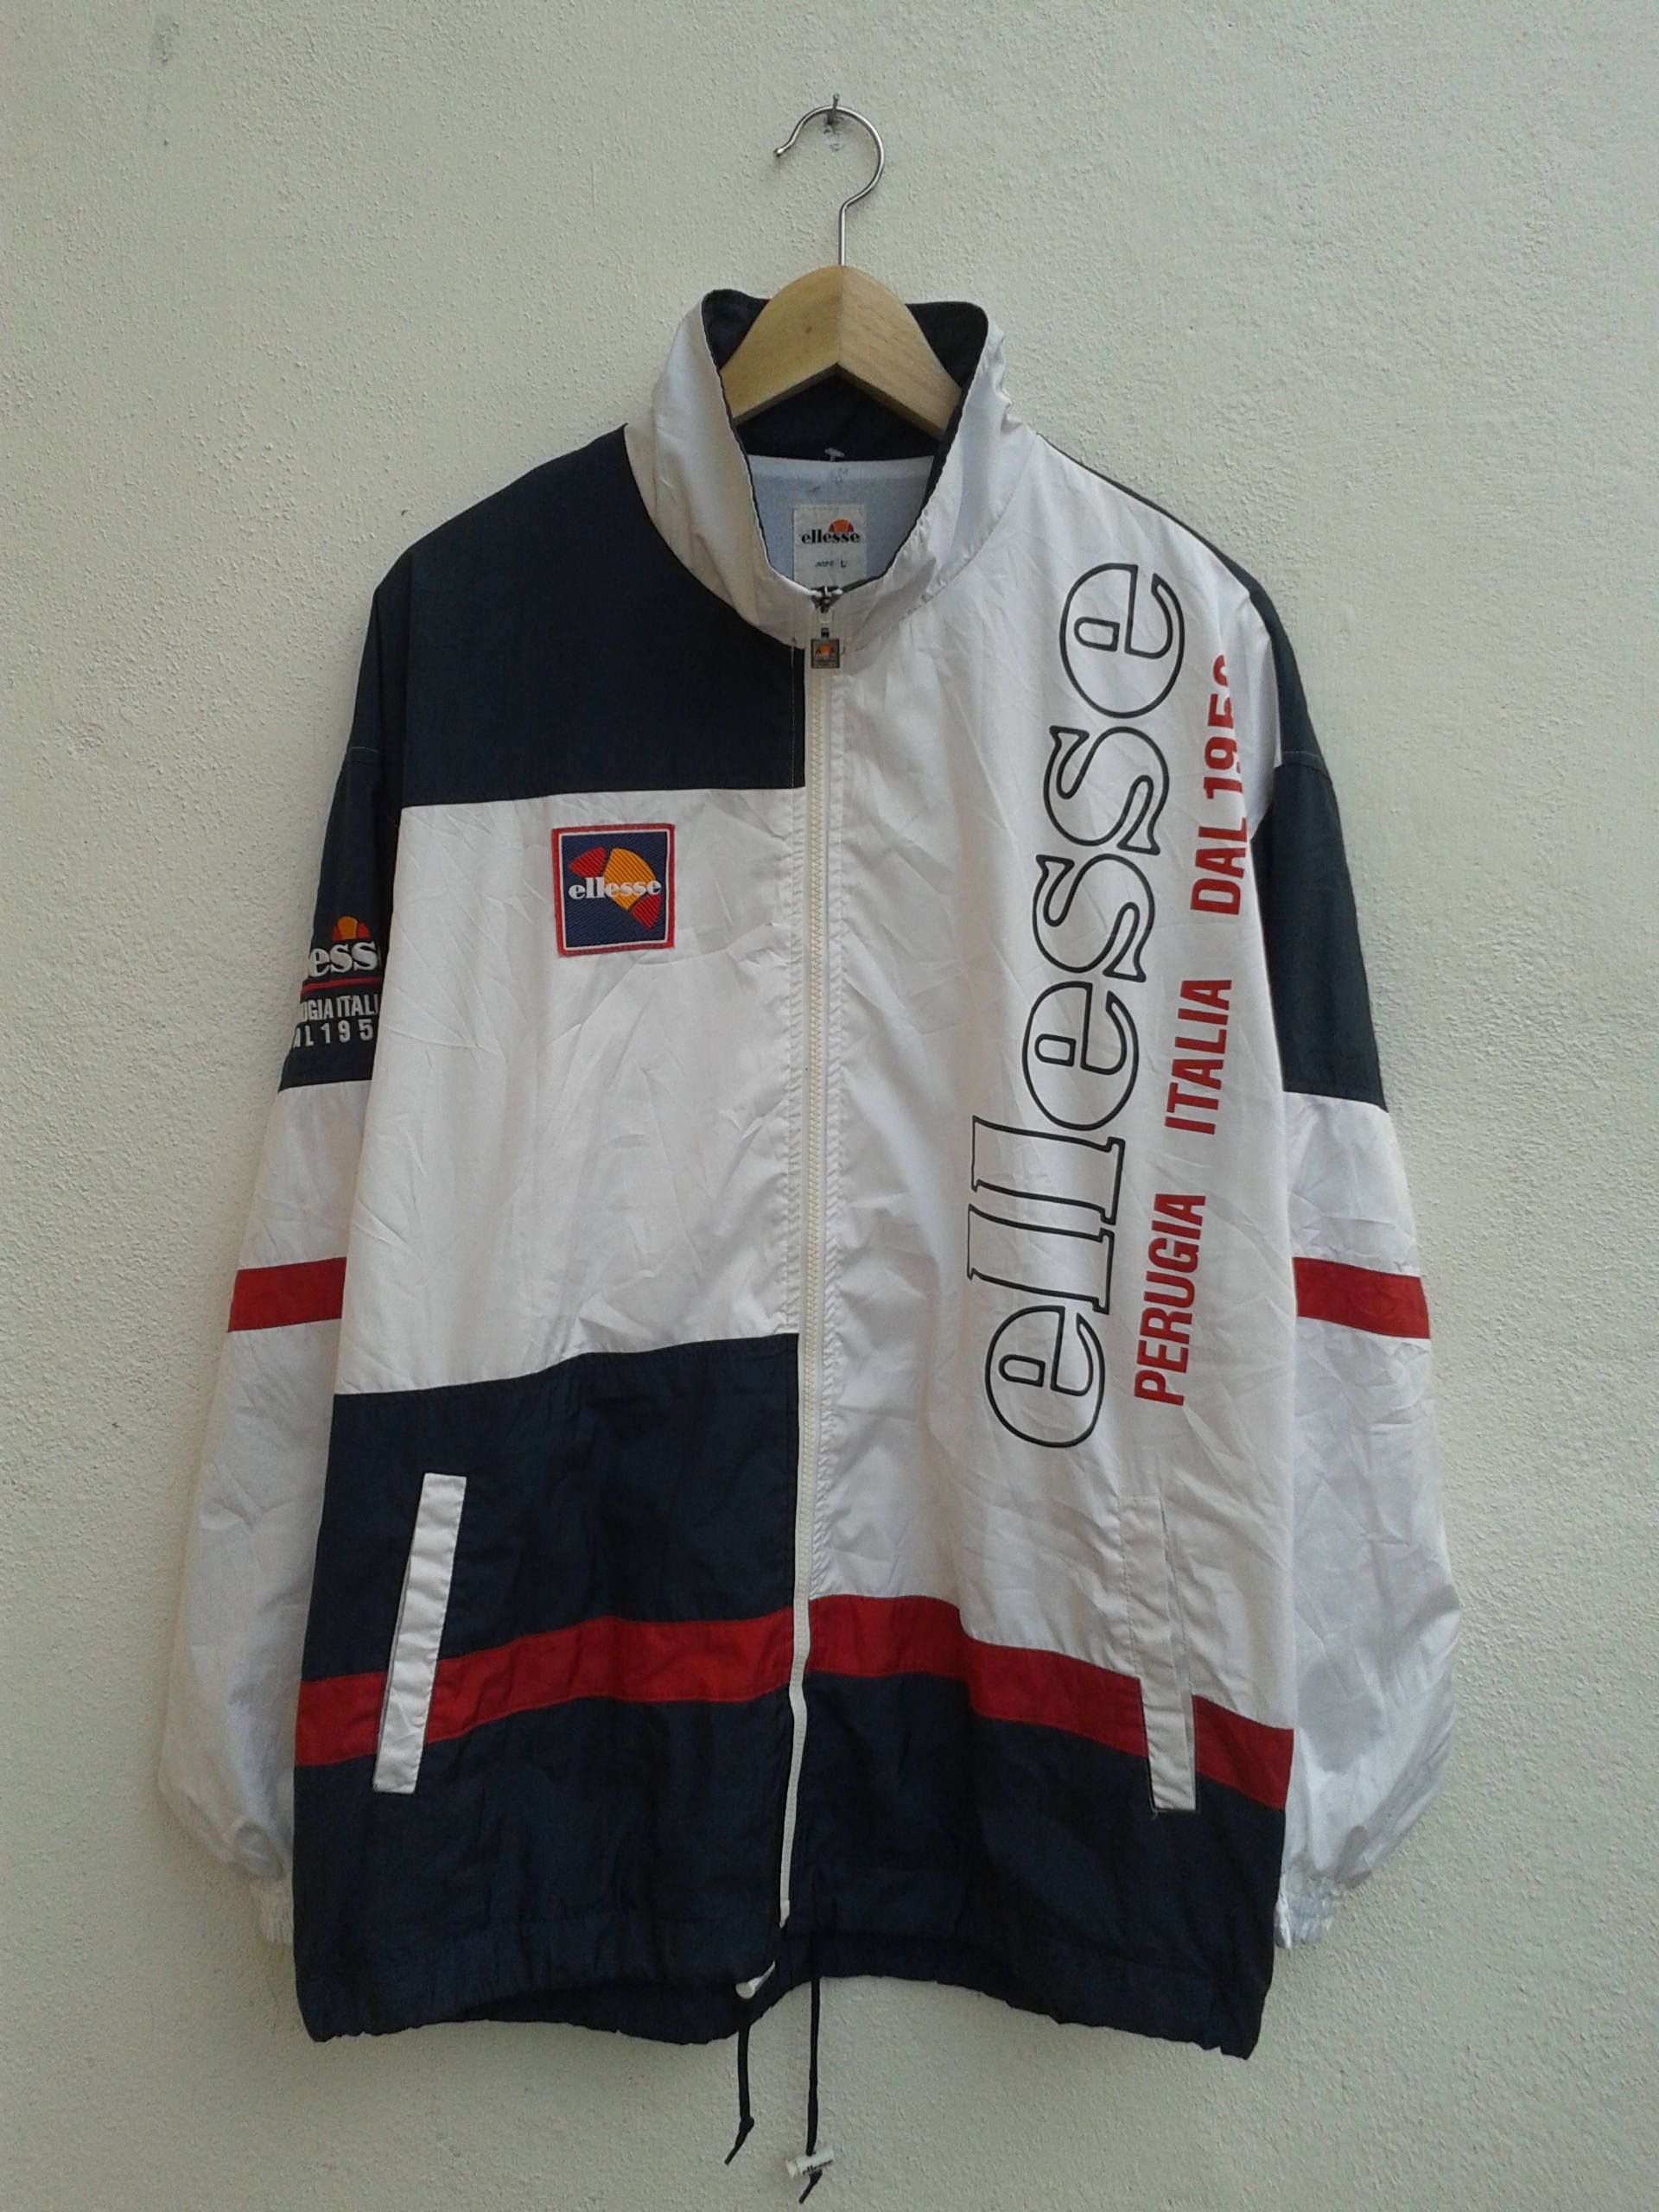 13b4184b96 Vintage 90s ELLESSE Prugia Italia Cross Color Big Spell Out Windbreaker  Sportswear Embroidered Lightweight Jacket Size L by BubaGumpBudu on Etsy